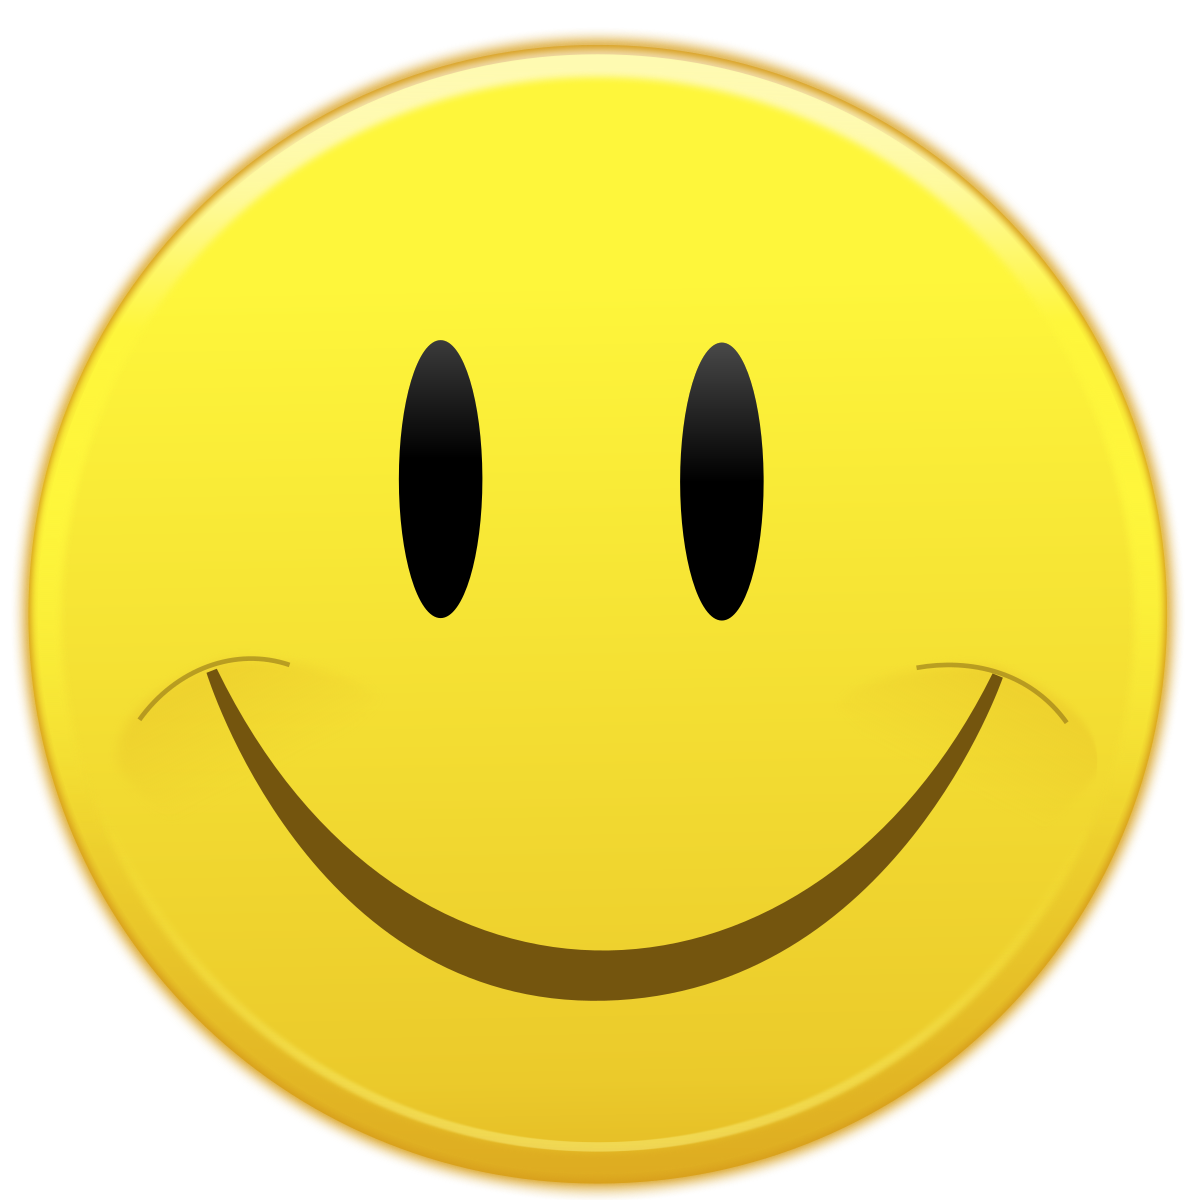 Smiley wikipedia . Study clipart emoticon